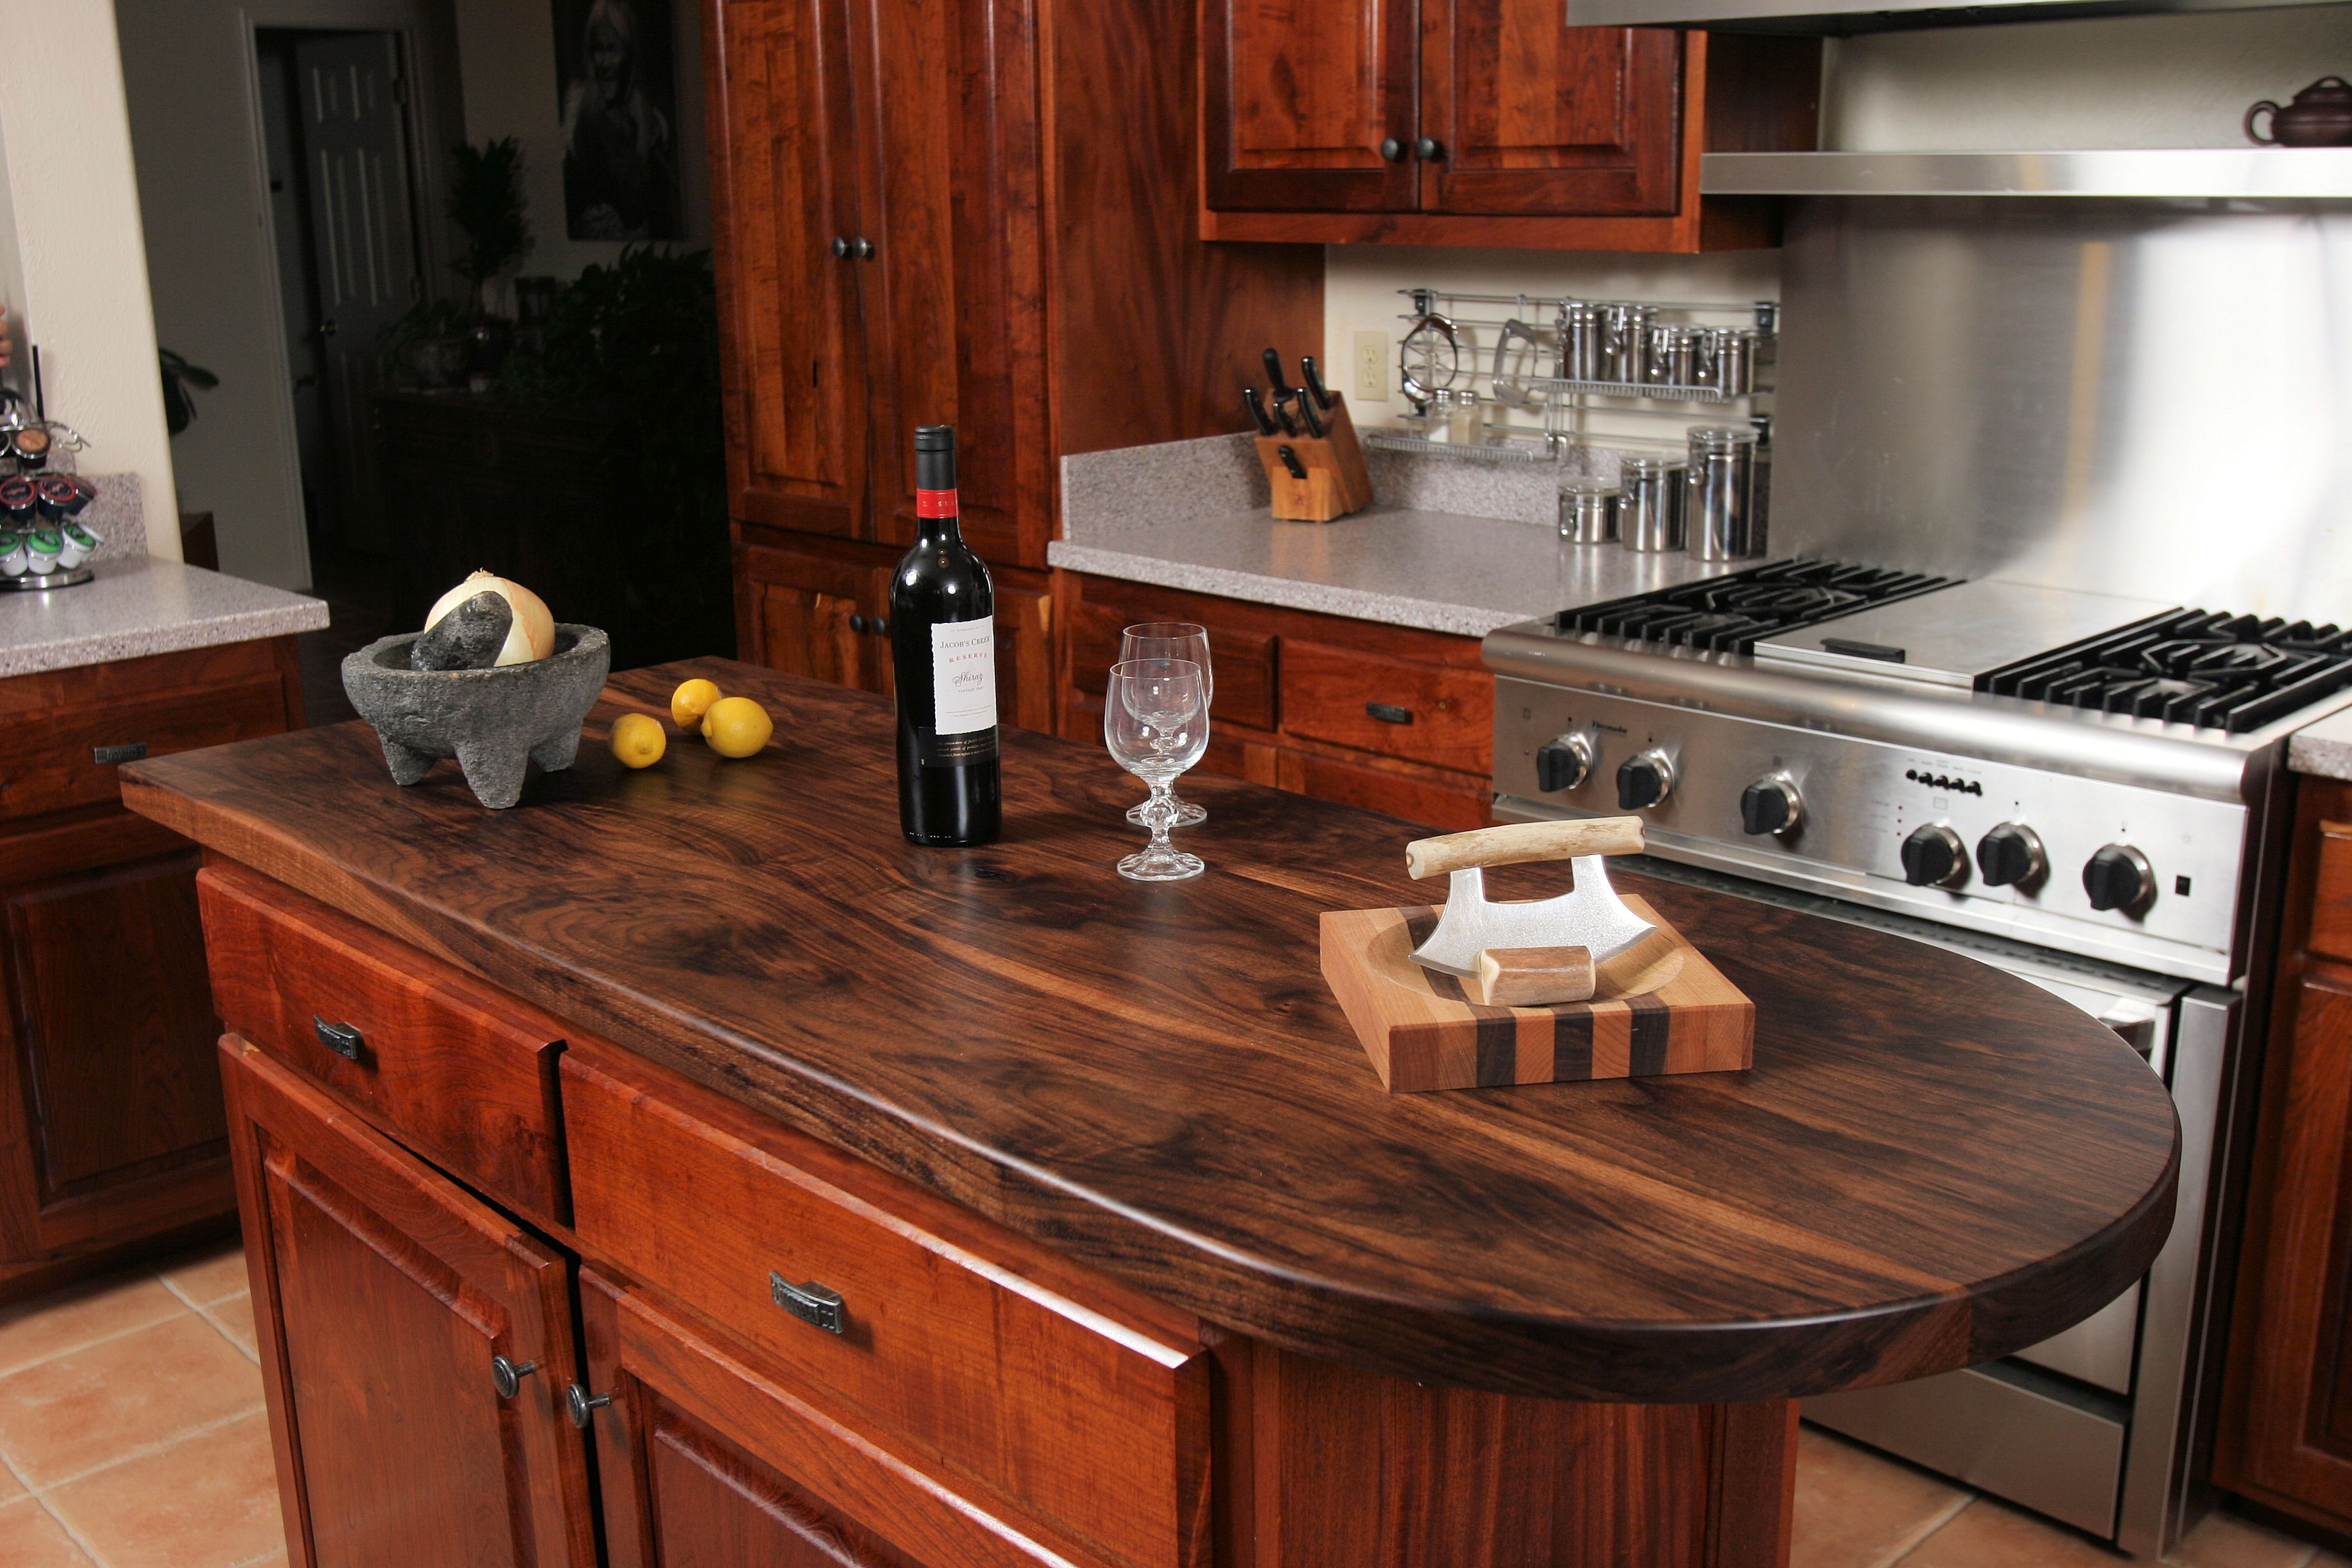 Uncategorized Wooden Kitchen Counter custom wood countertop options finishes recommended for tops used as cutting surfaces